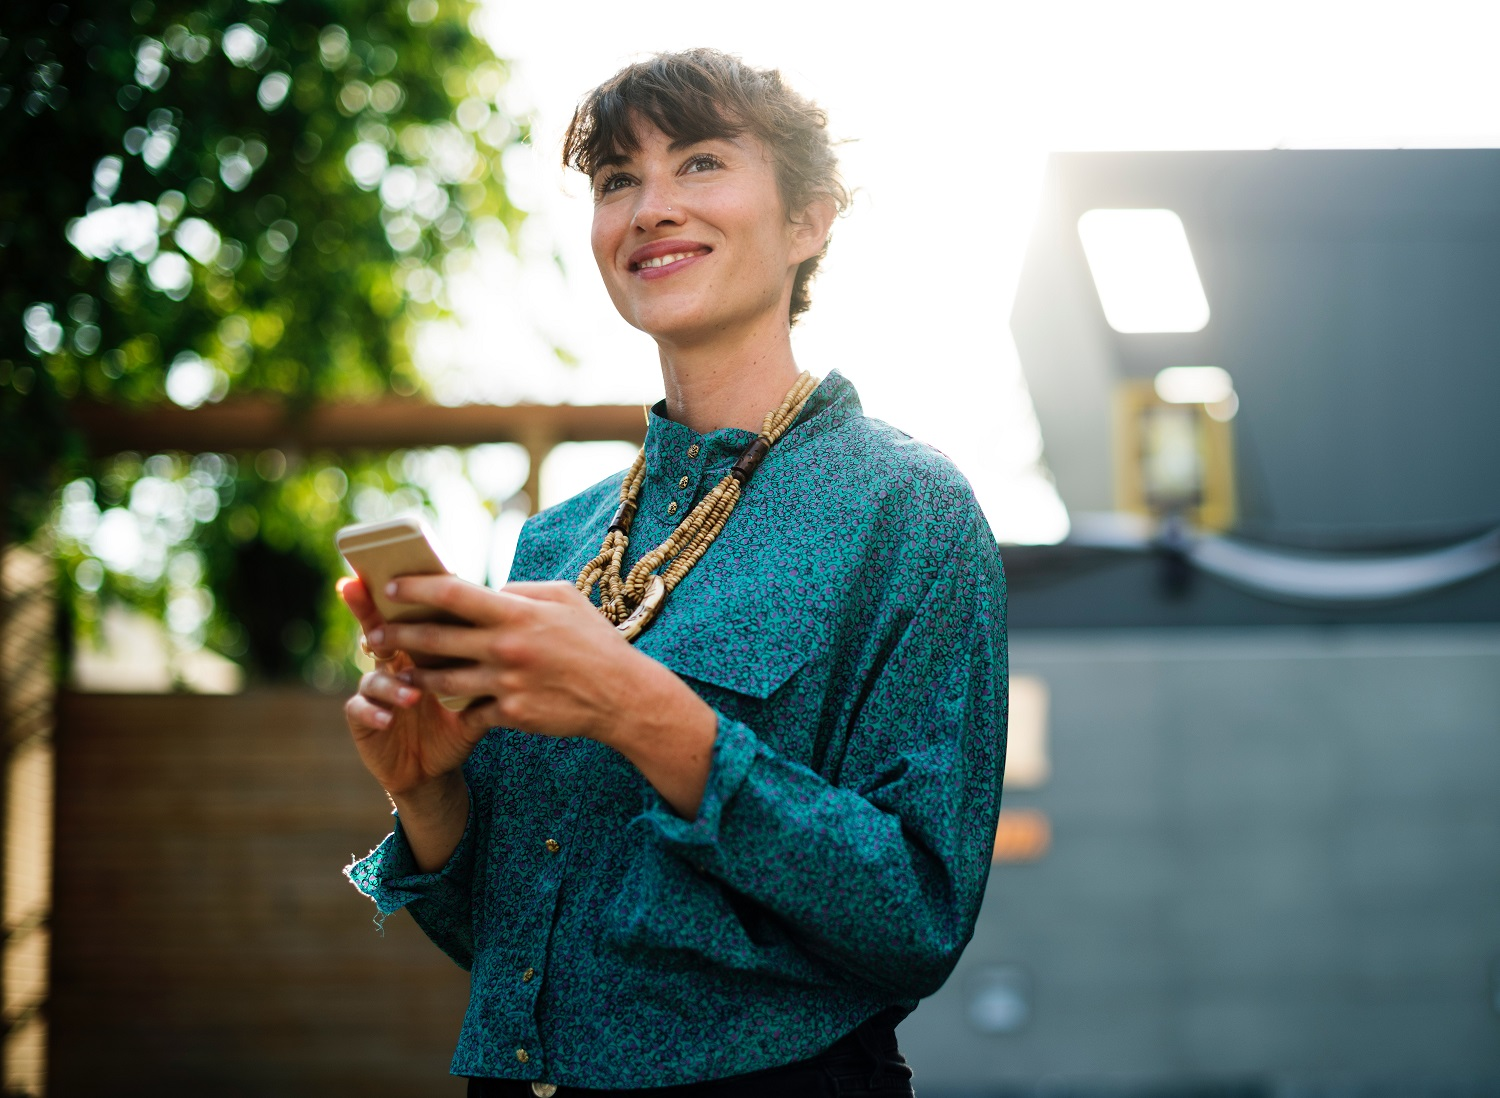 how to improve Small Business to Customer relationships online